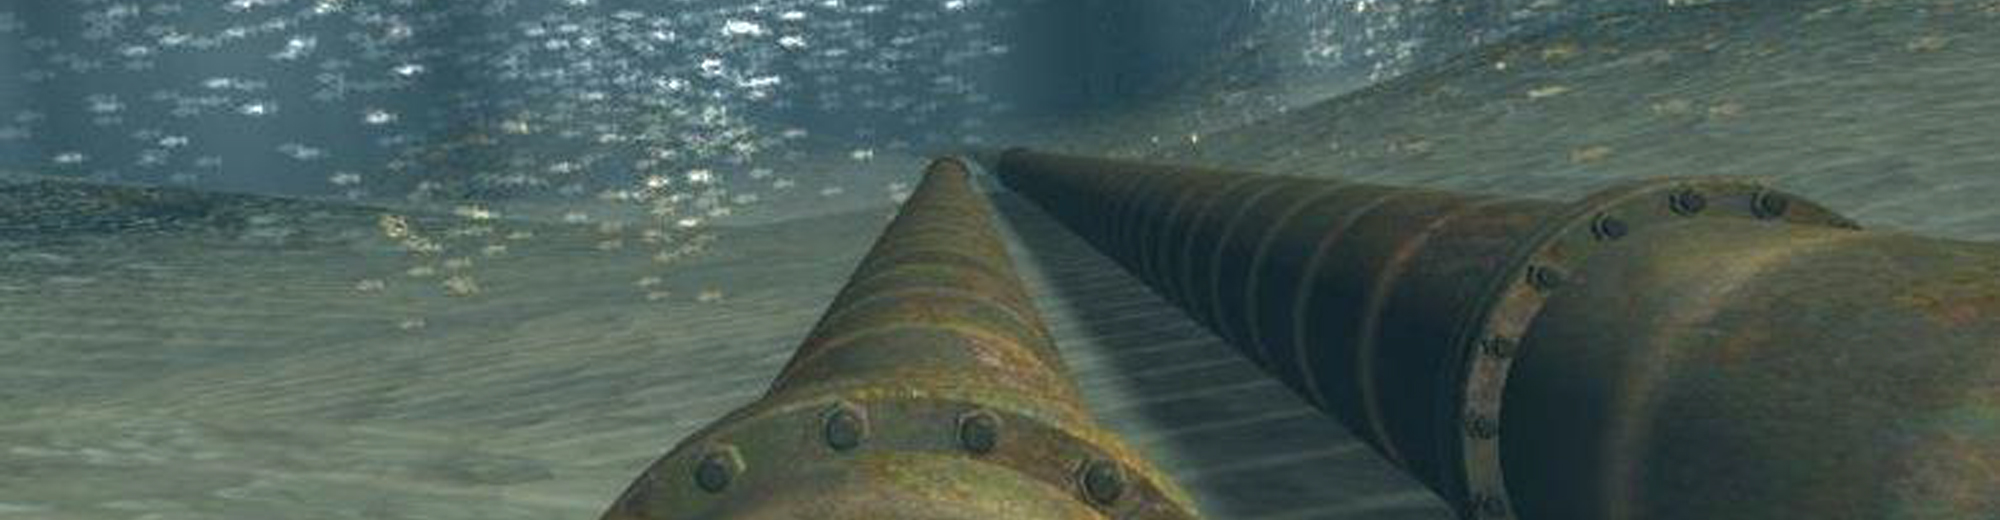 subsea banner